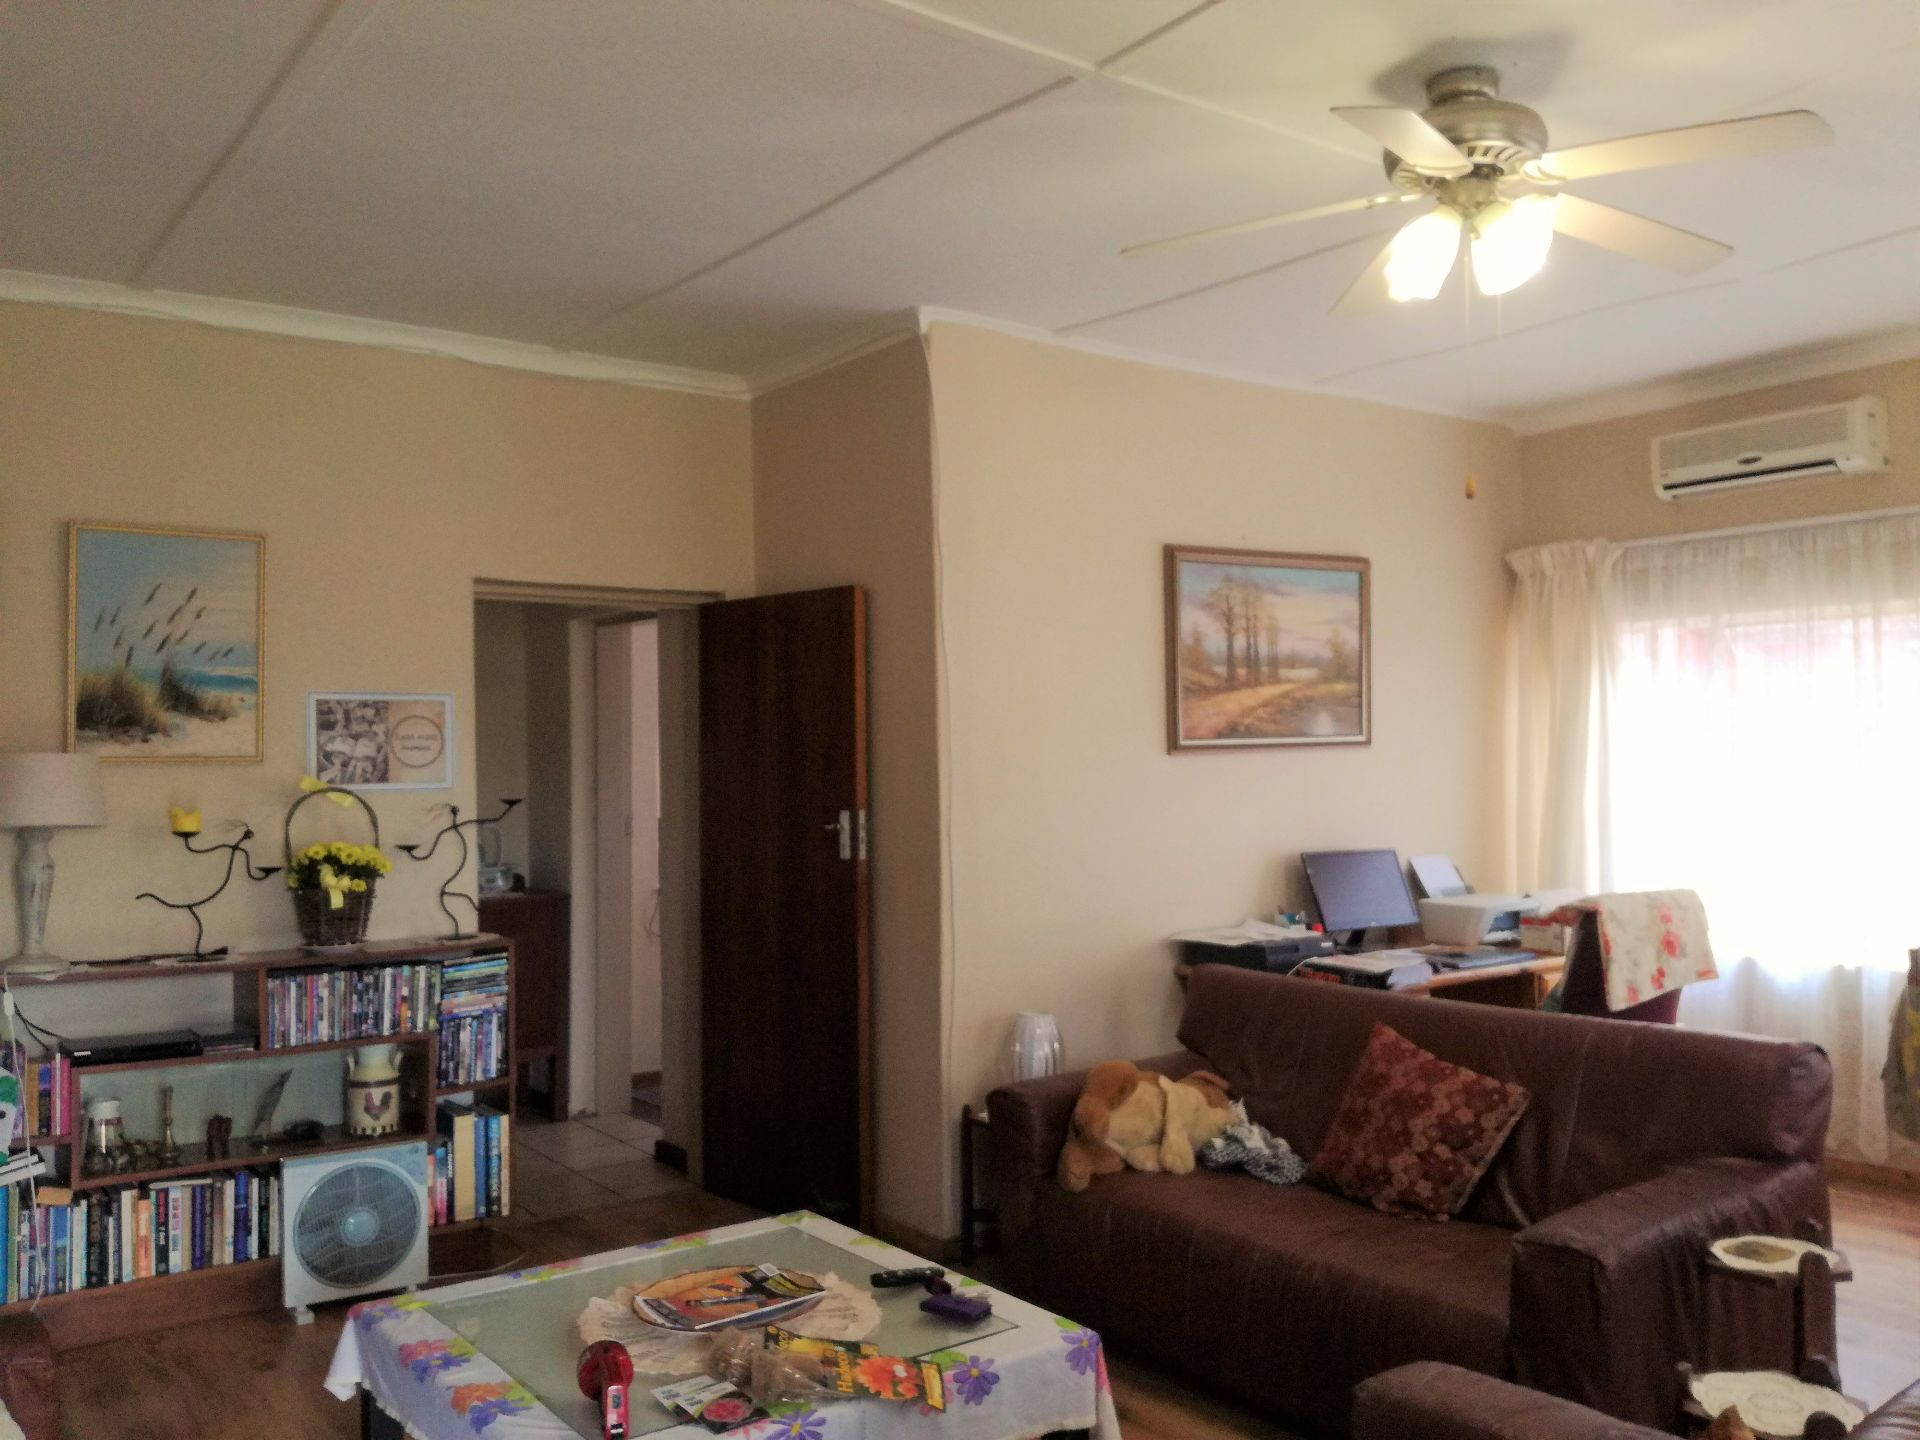 Potchefstroom Central property for sale. Ref No: 13623596. Picture no 6